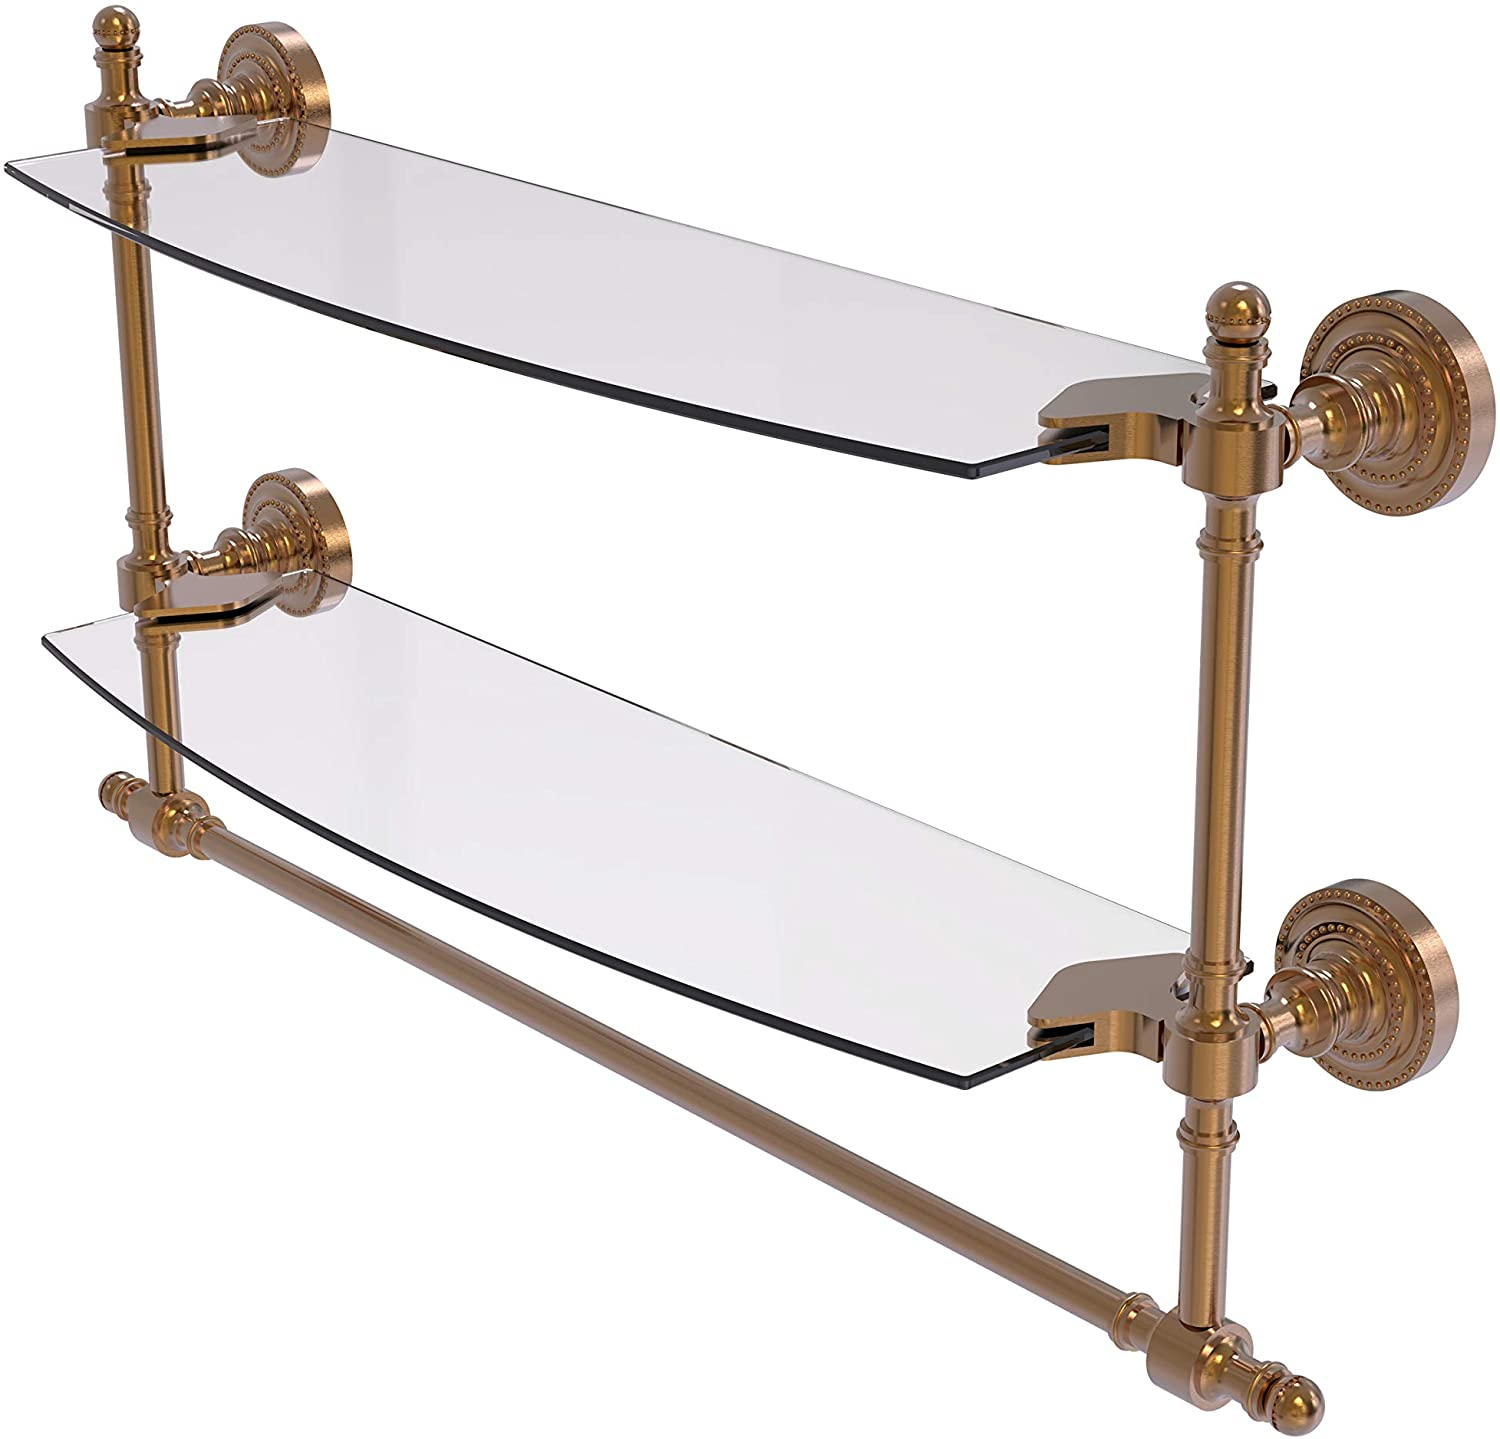 Allied Brass RD-34TB/18 Retro Dot Collection 18 Inch Two Tiered Integrated Towel Bar Glass Shelf, Brushed Bronze